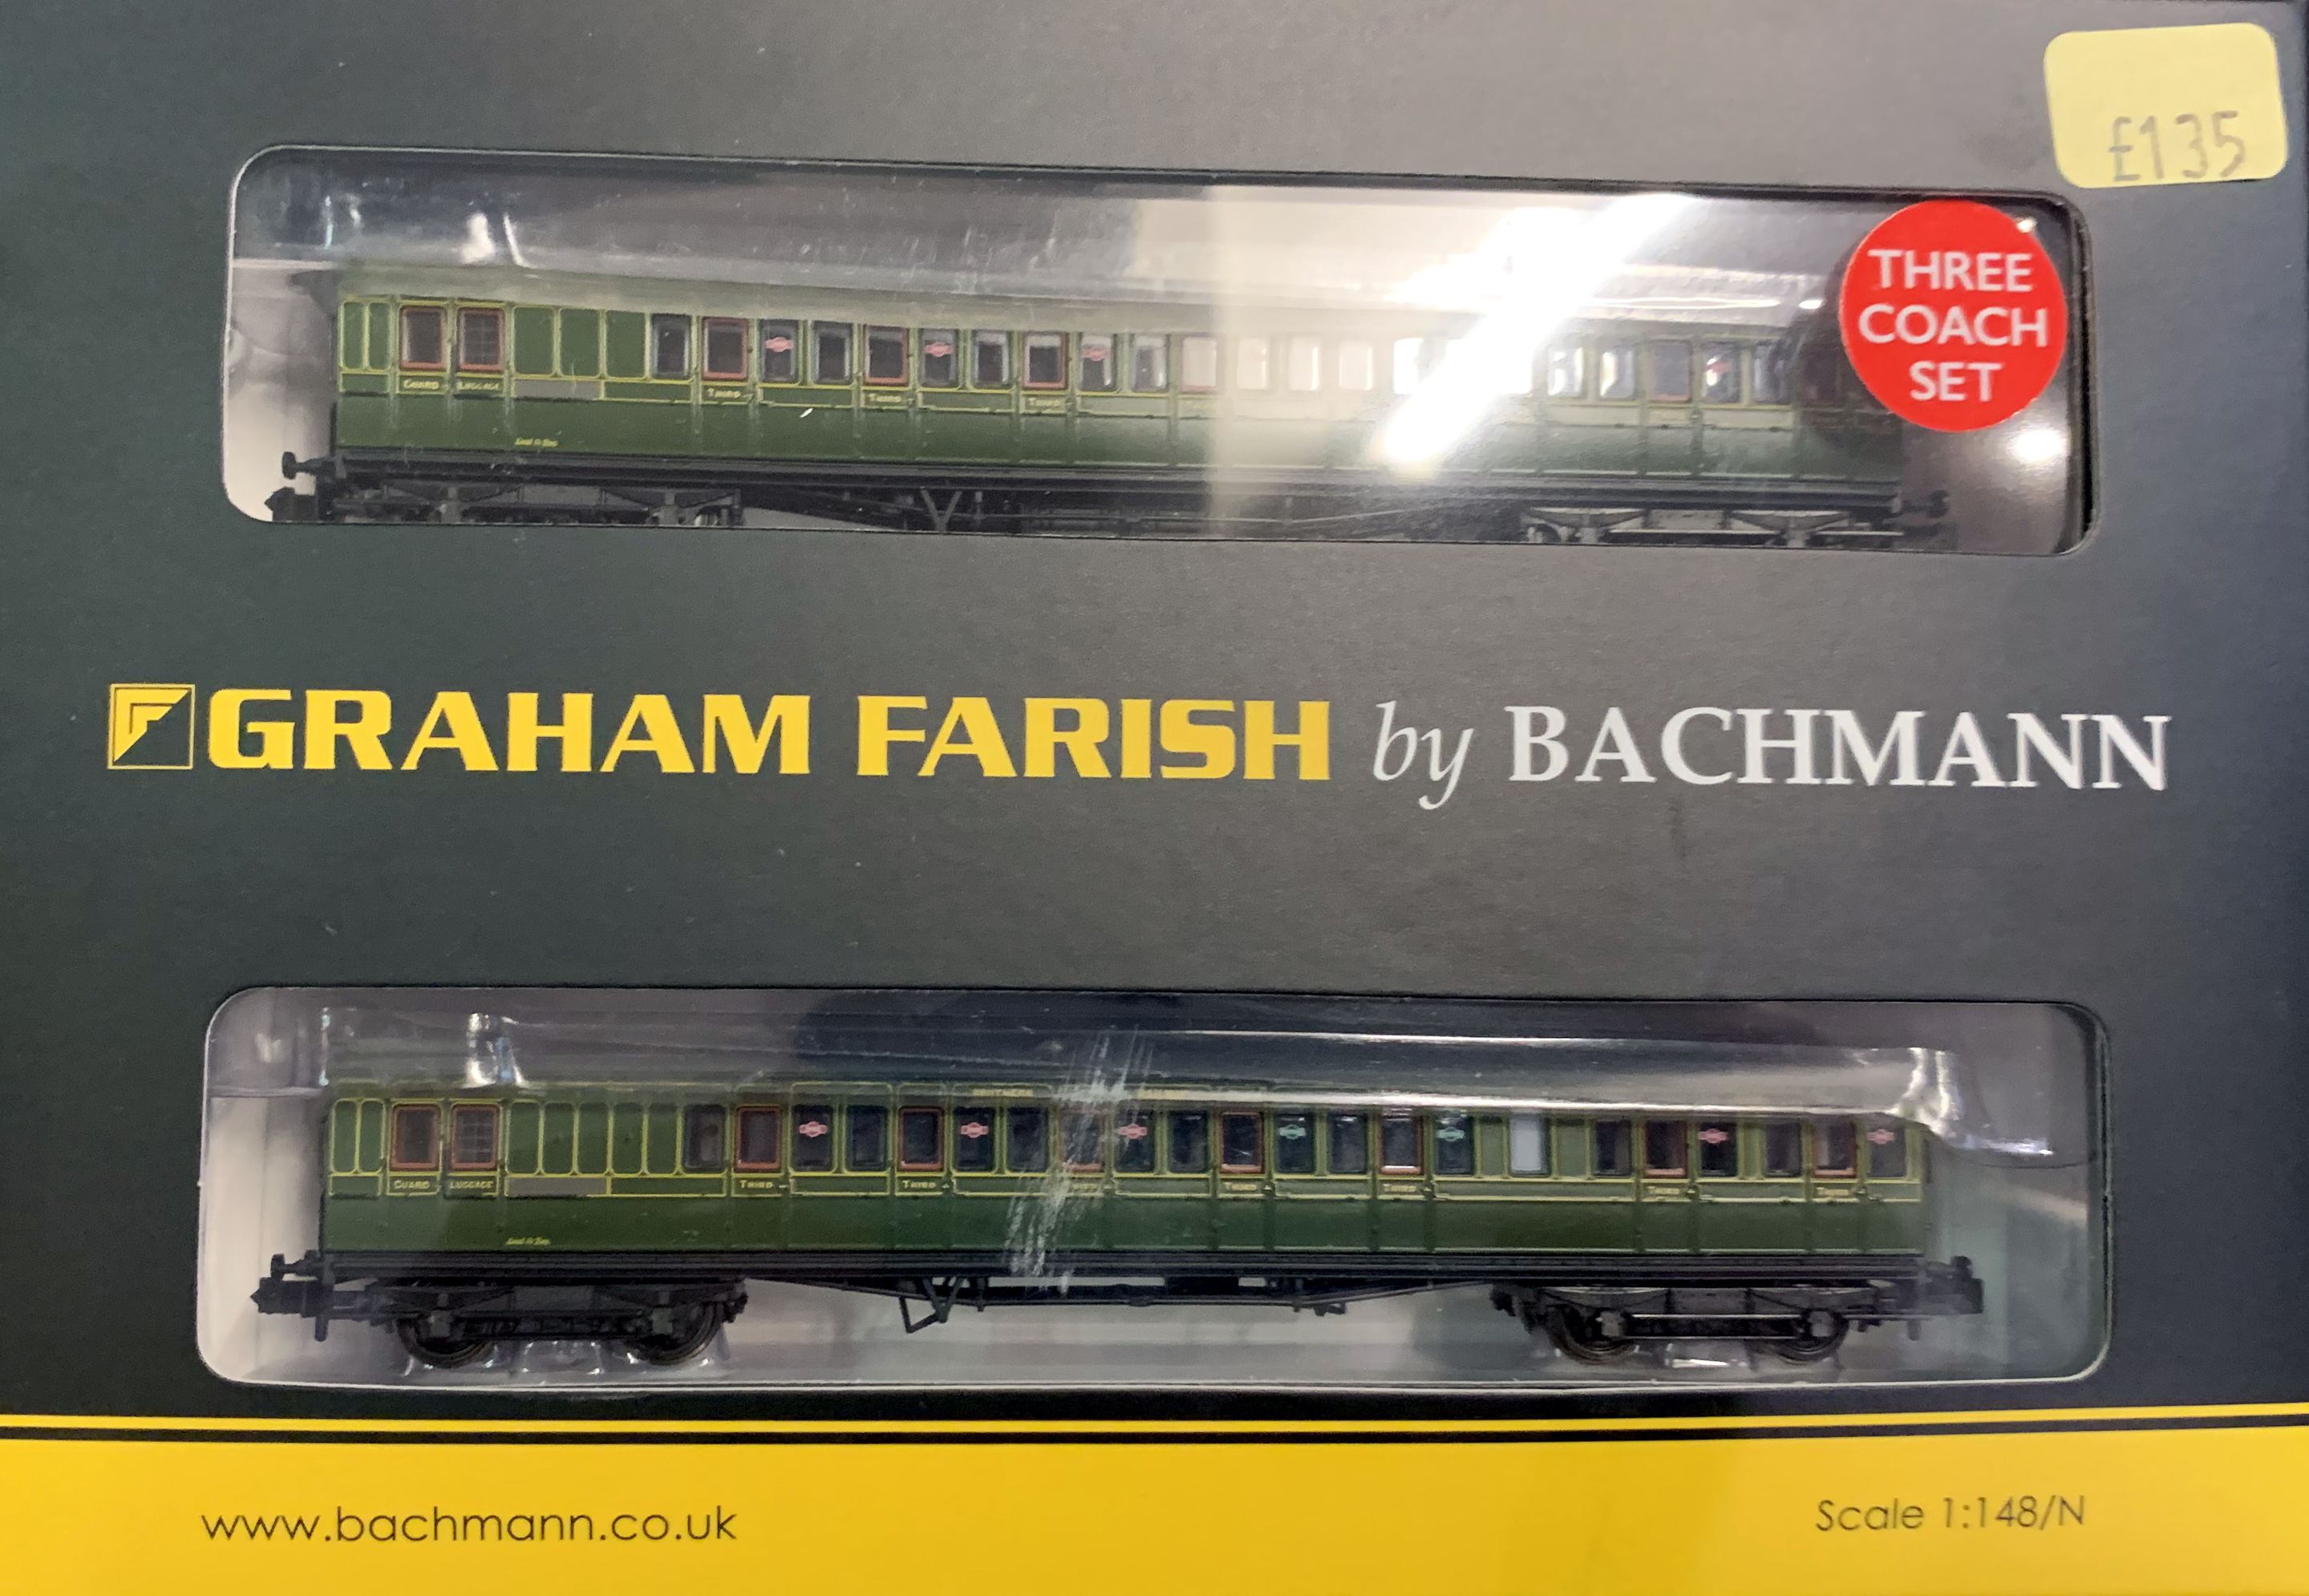 A set of Graham Farish by Bachmann model railway carriages which were among the items stolen (Gloucestershire Police/PA)